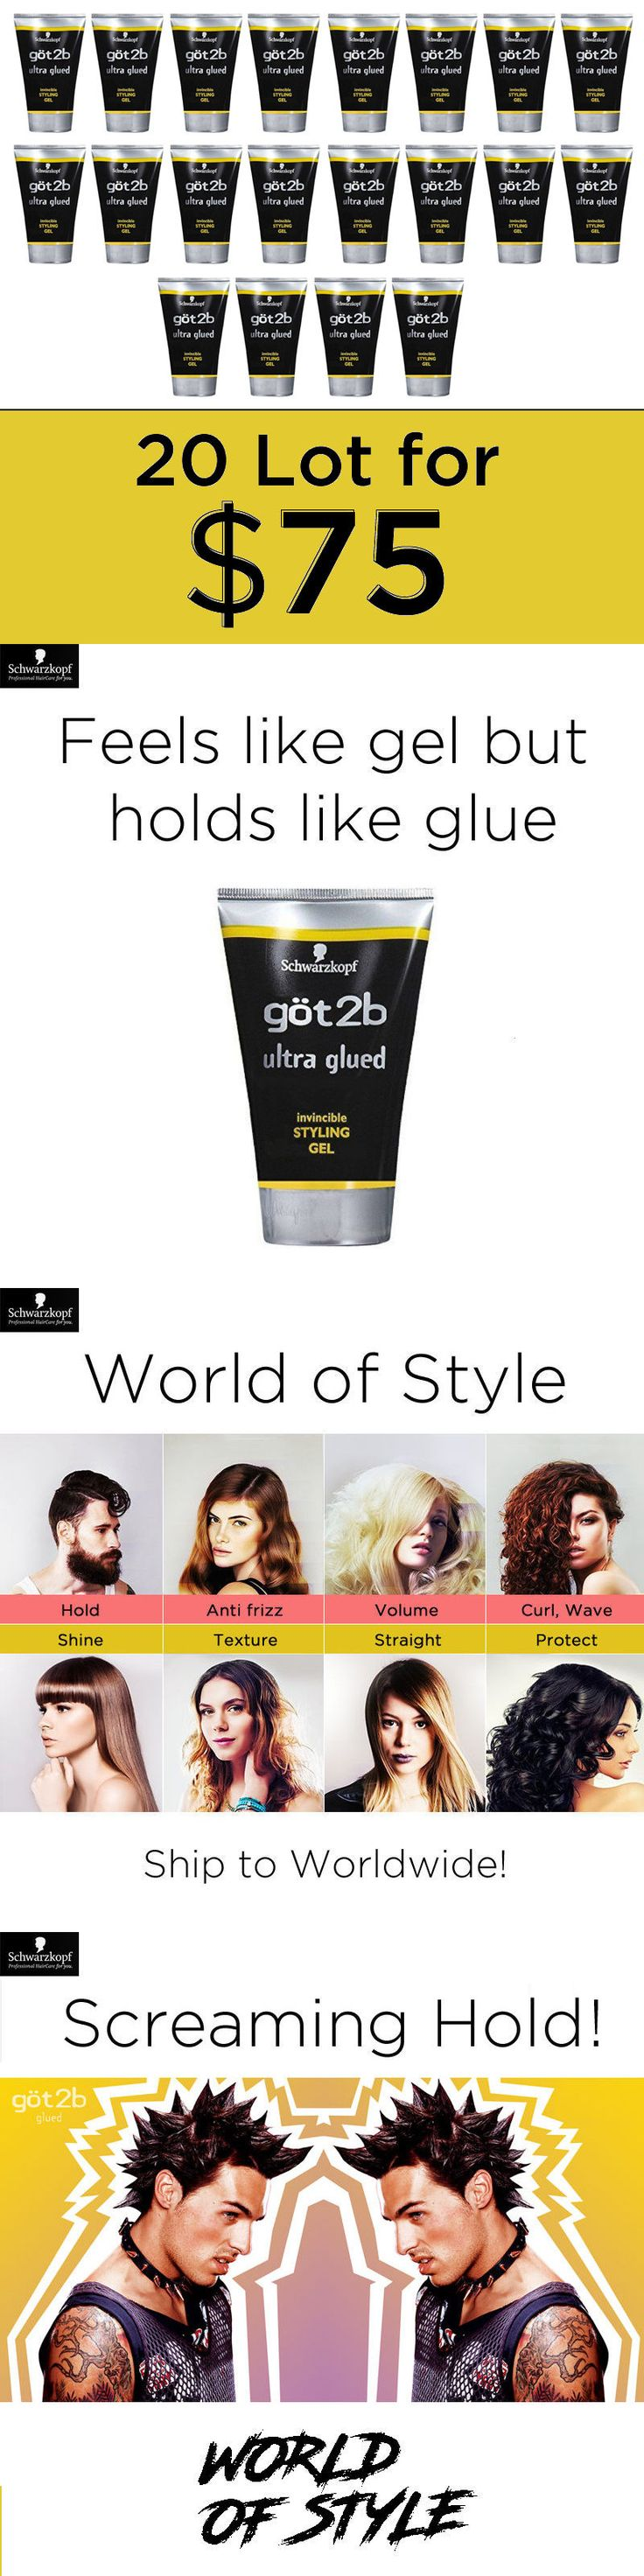 Styling Products: Got2b (Lot 20) Ultra Glued Invincible Styling Hair Gel 1.25 Oz By Schwarzkopf -> BUY IT NOW ONLY: $75 on eBay!